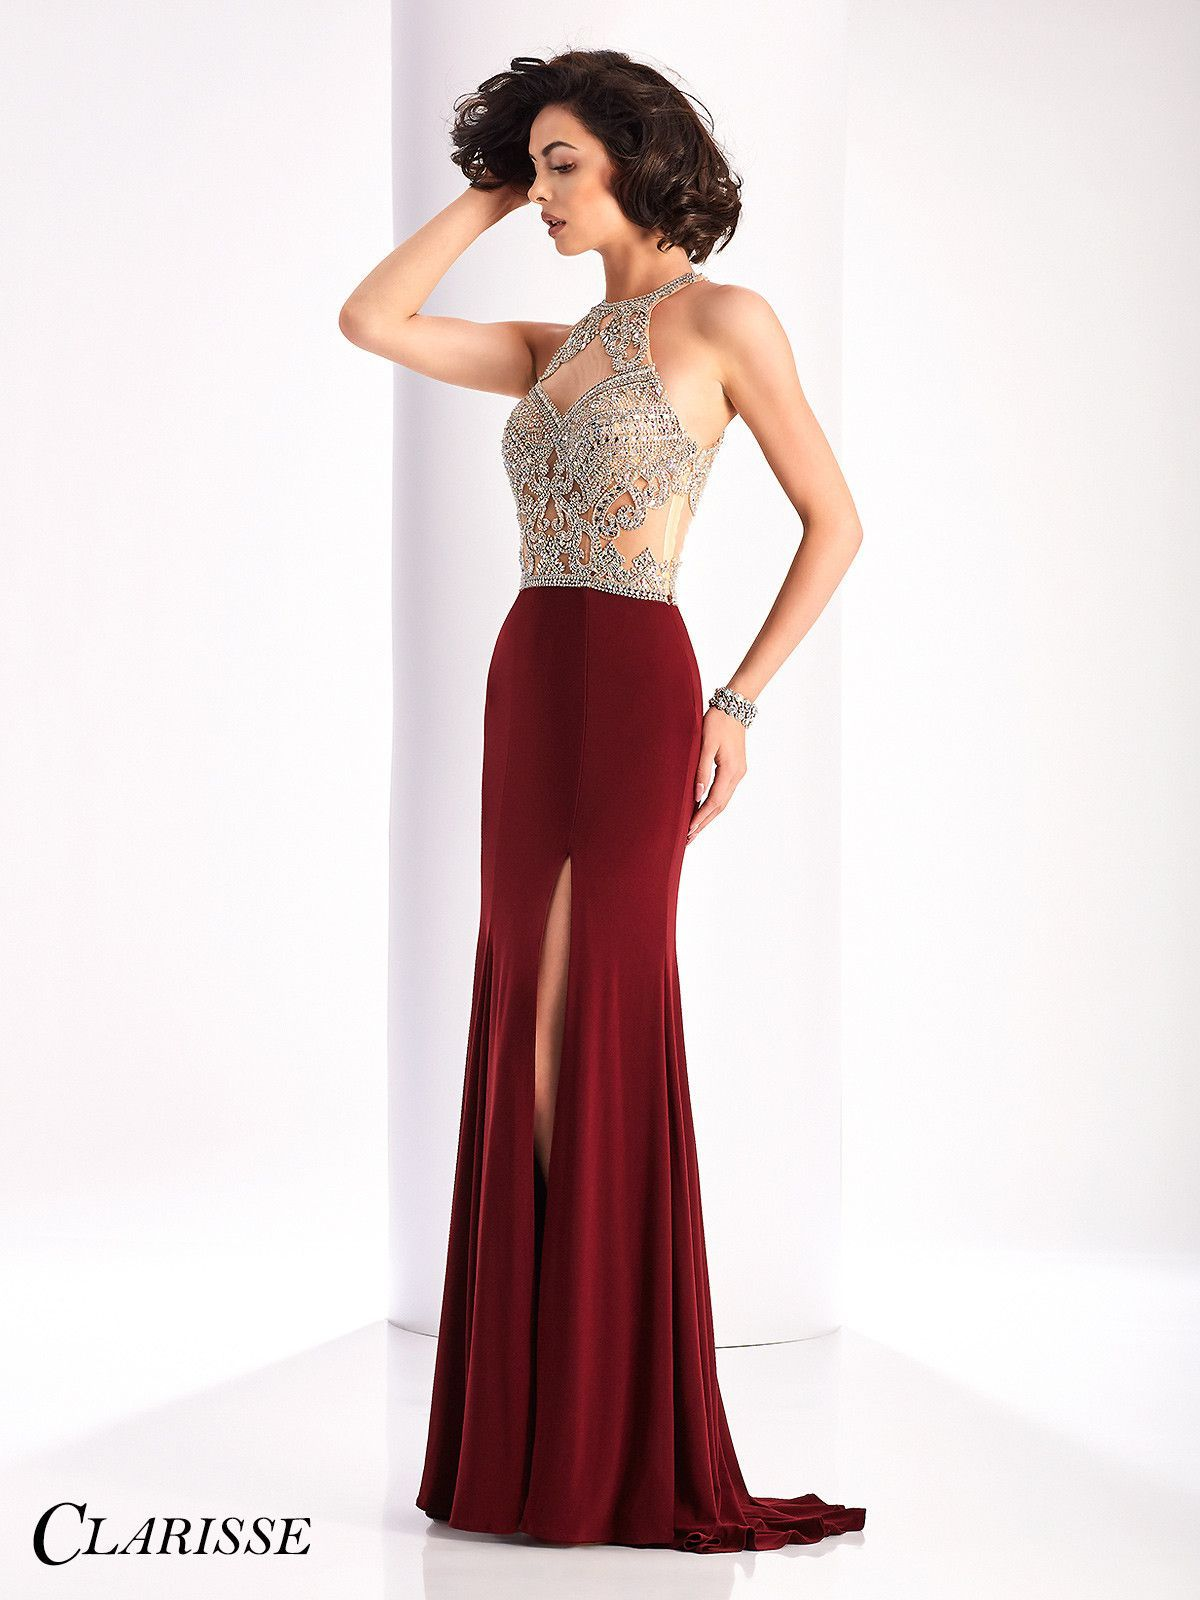 You Can Be Fun Flirty And Fabulous In This Gorgeous Dress With A High Neckline Check It Out At Rsvp Prom Pageant Your Source Of The Hottest